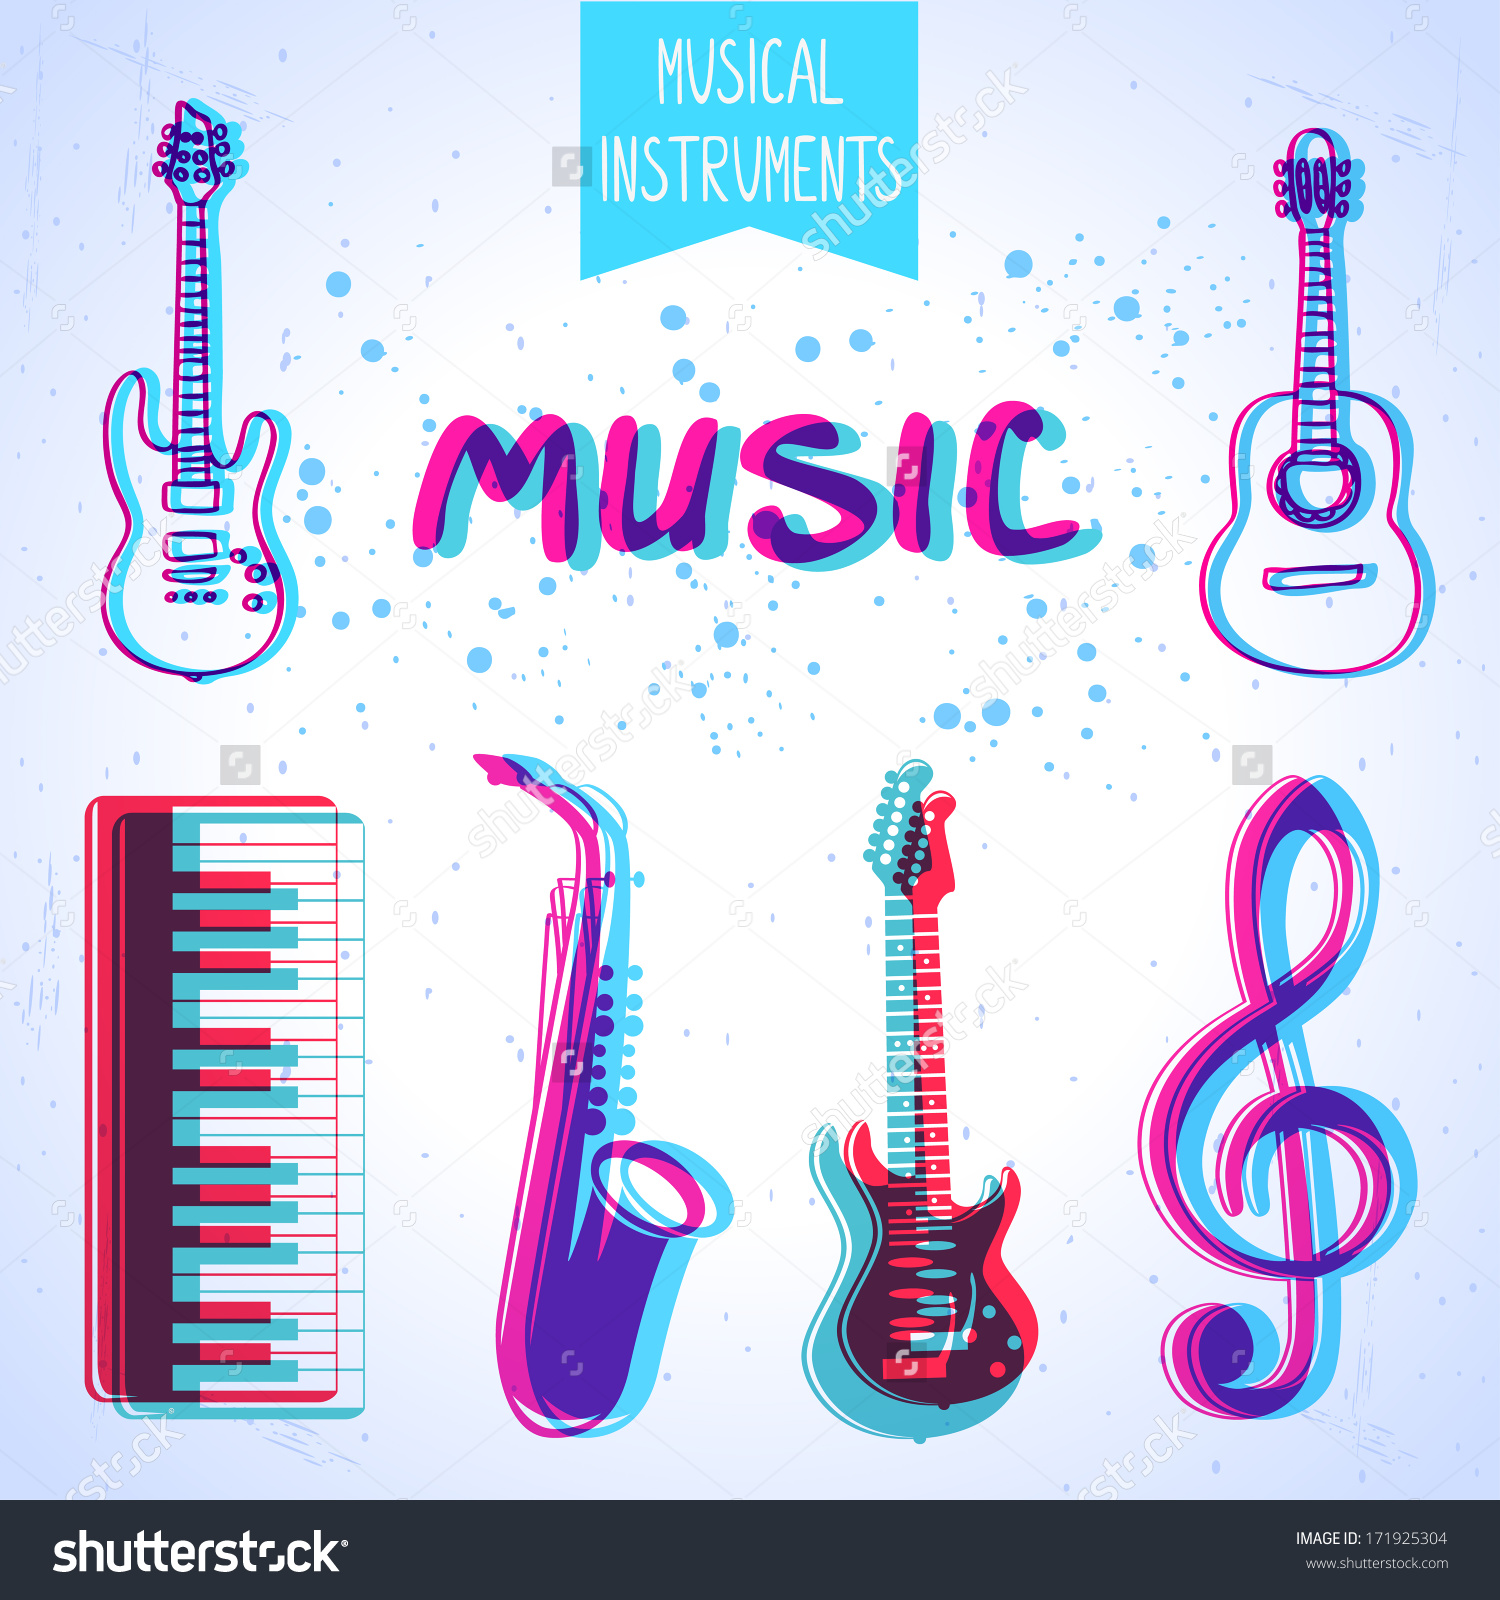 Icons Musical Instruments Stylized Effect 3d Stock Vector.